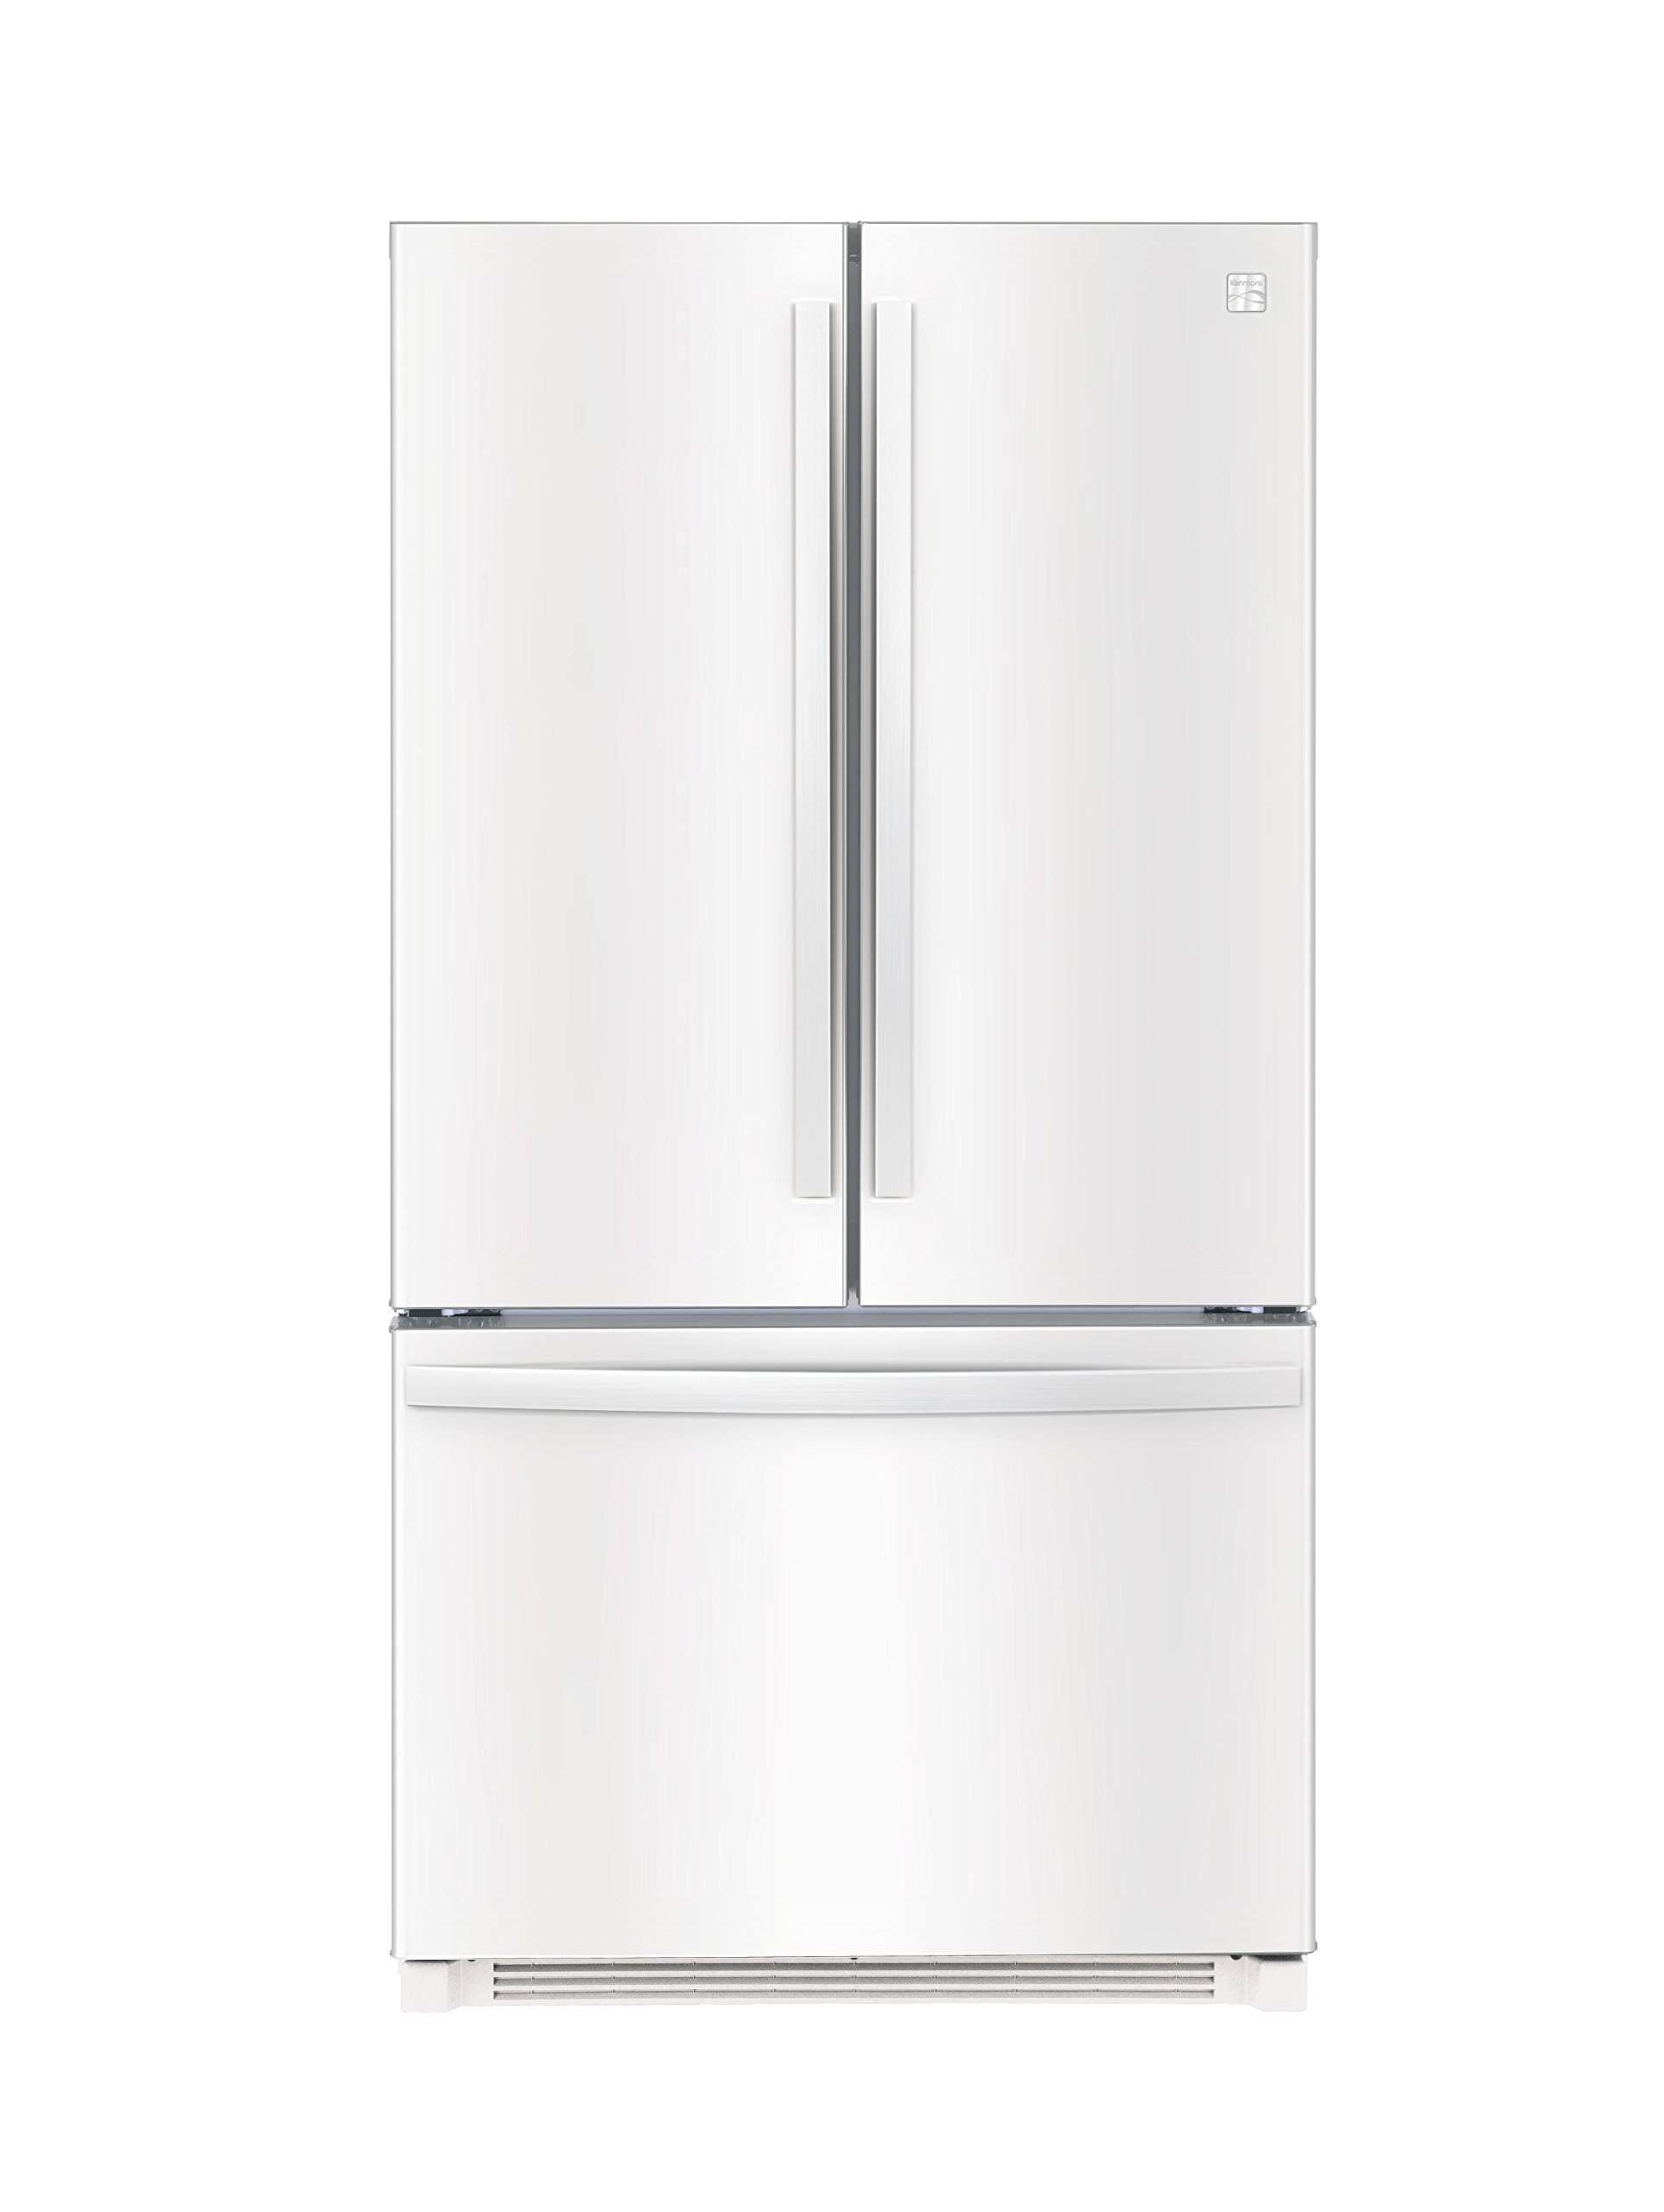 Kenmore 73022 26.1 cu. ft. Non-Dispense French Door Refrigerator in White, includes delivery and hookup (Available in select cities only)